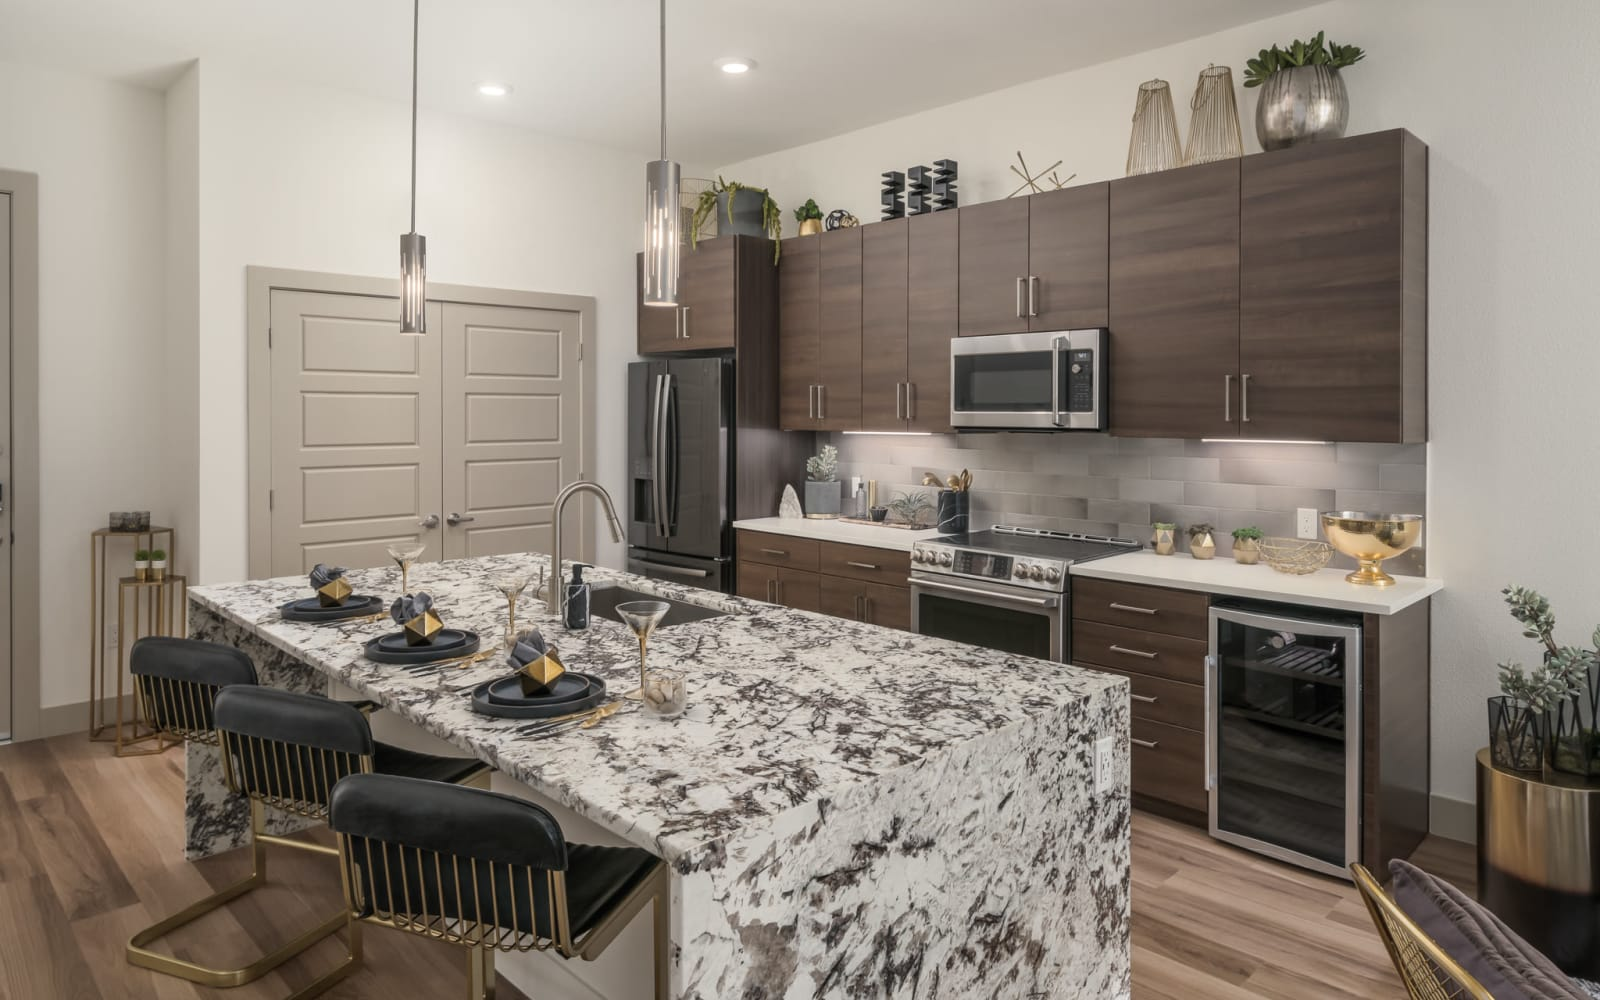 Upgraded island counter tops in the penthouse kitchen at The District at Scottsdale in Scottsdale, Arizona